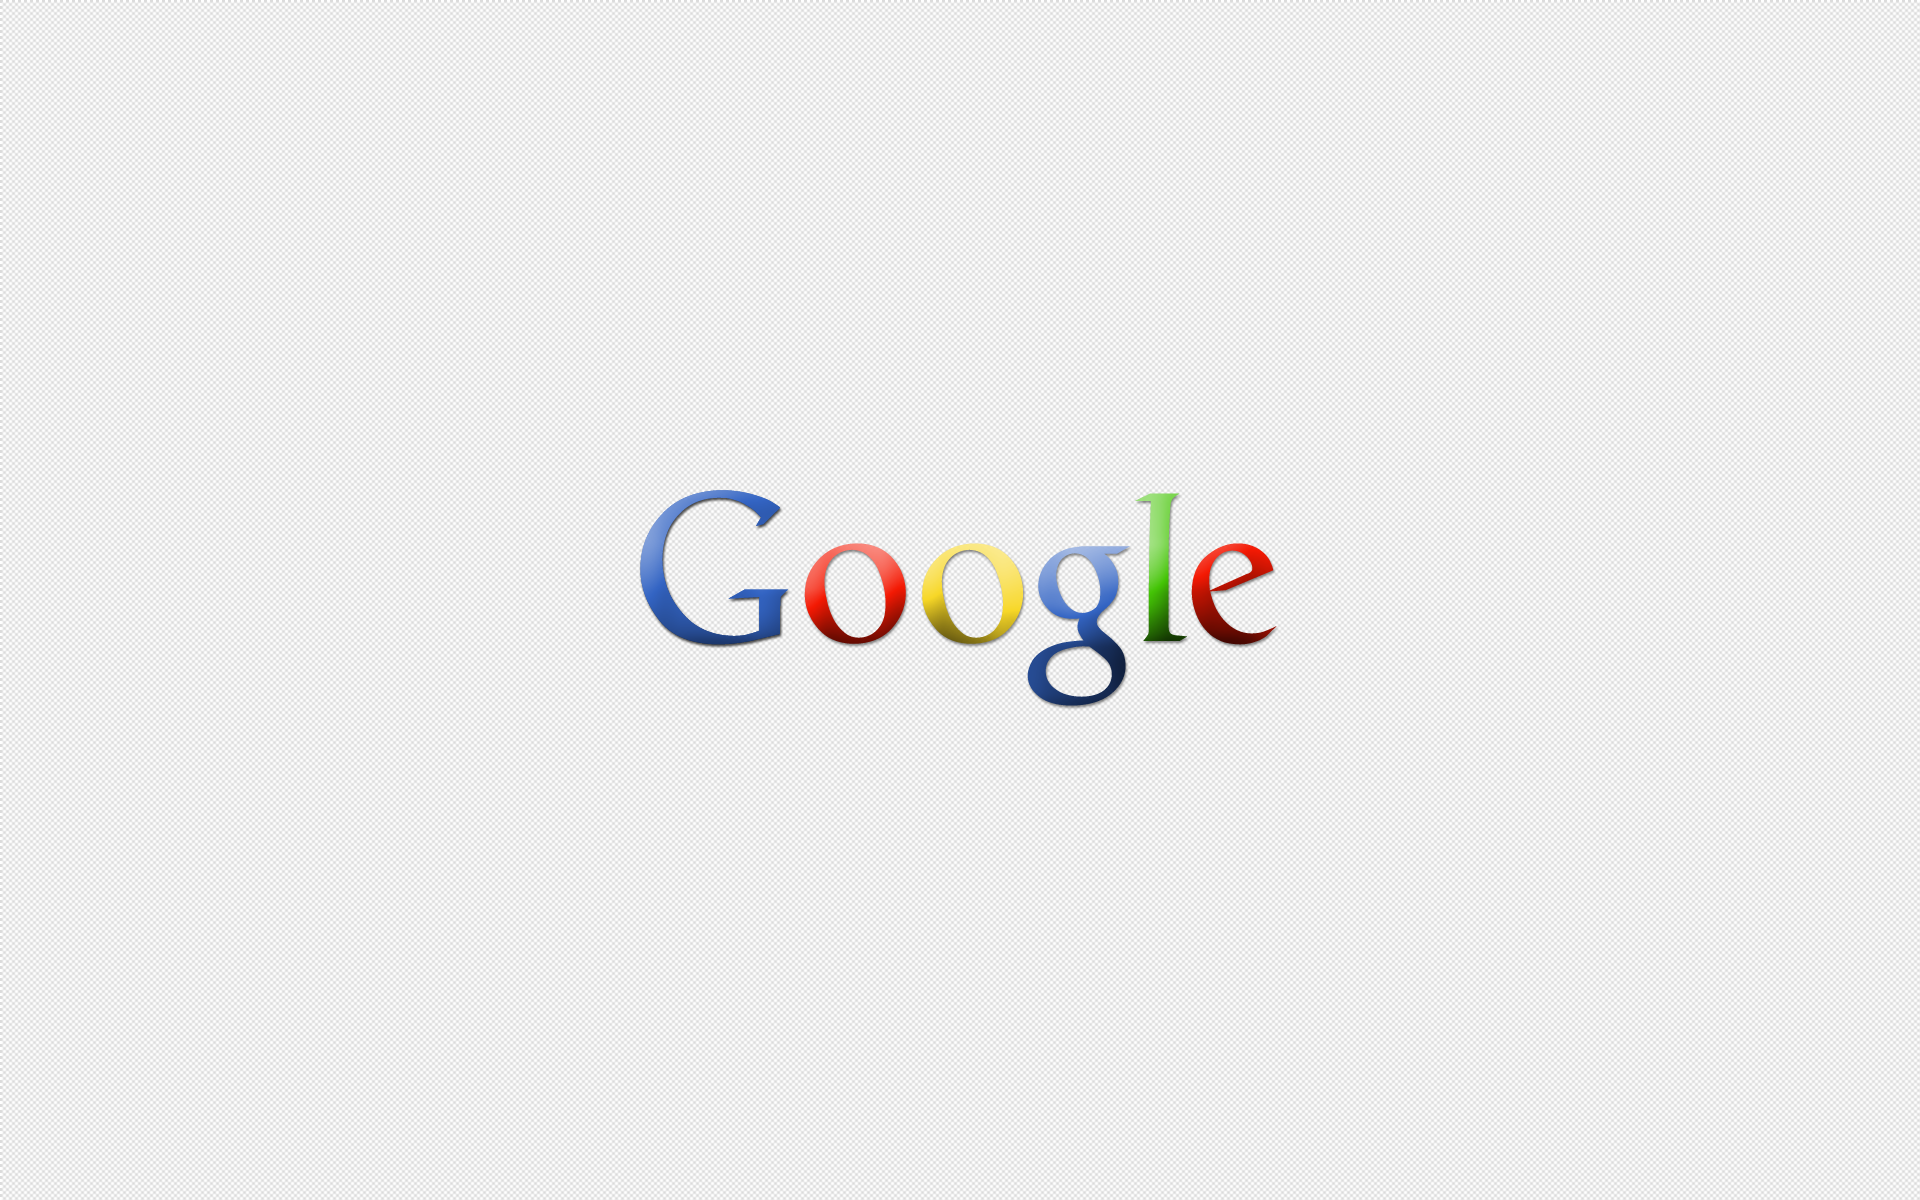 Google 1920x1200 - HD Widescreen Images